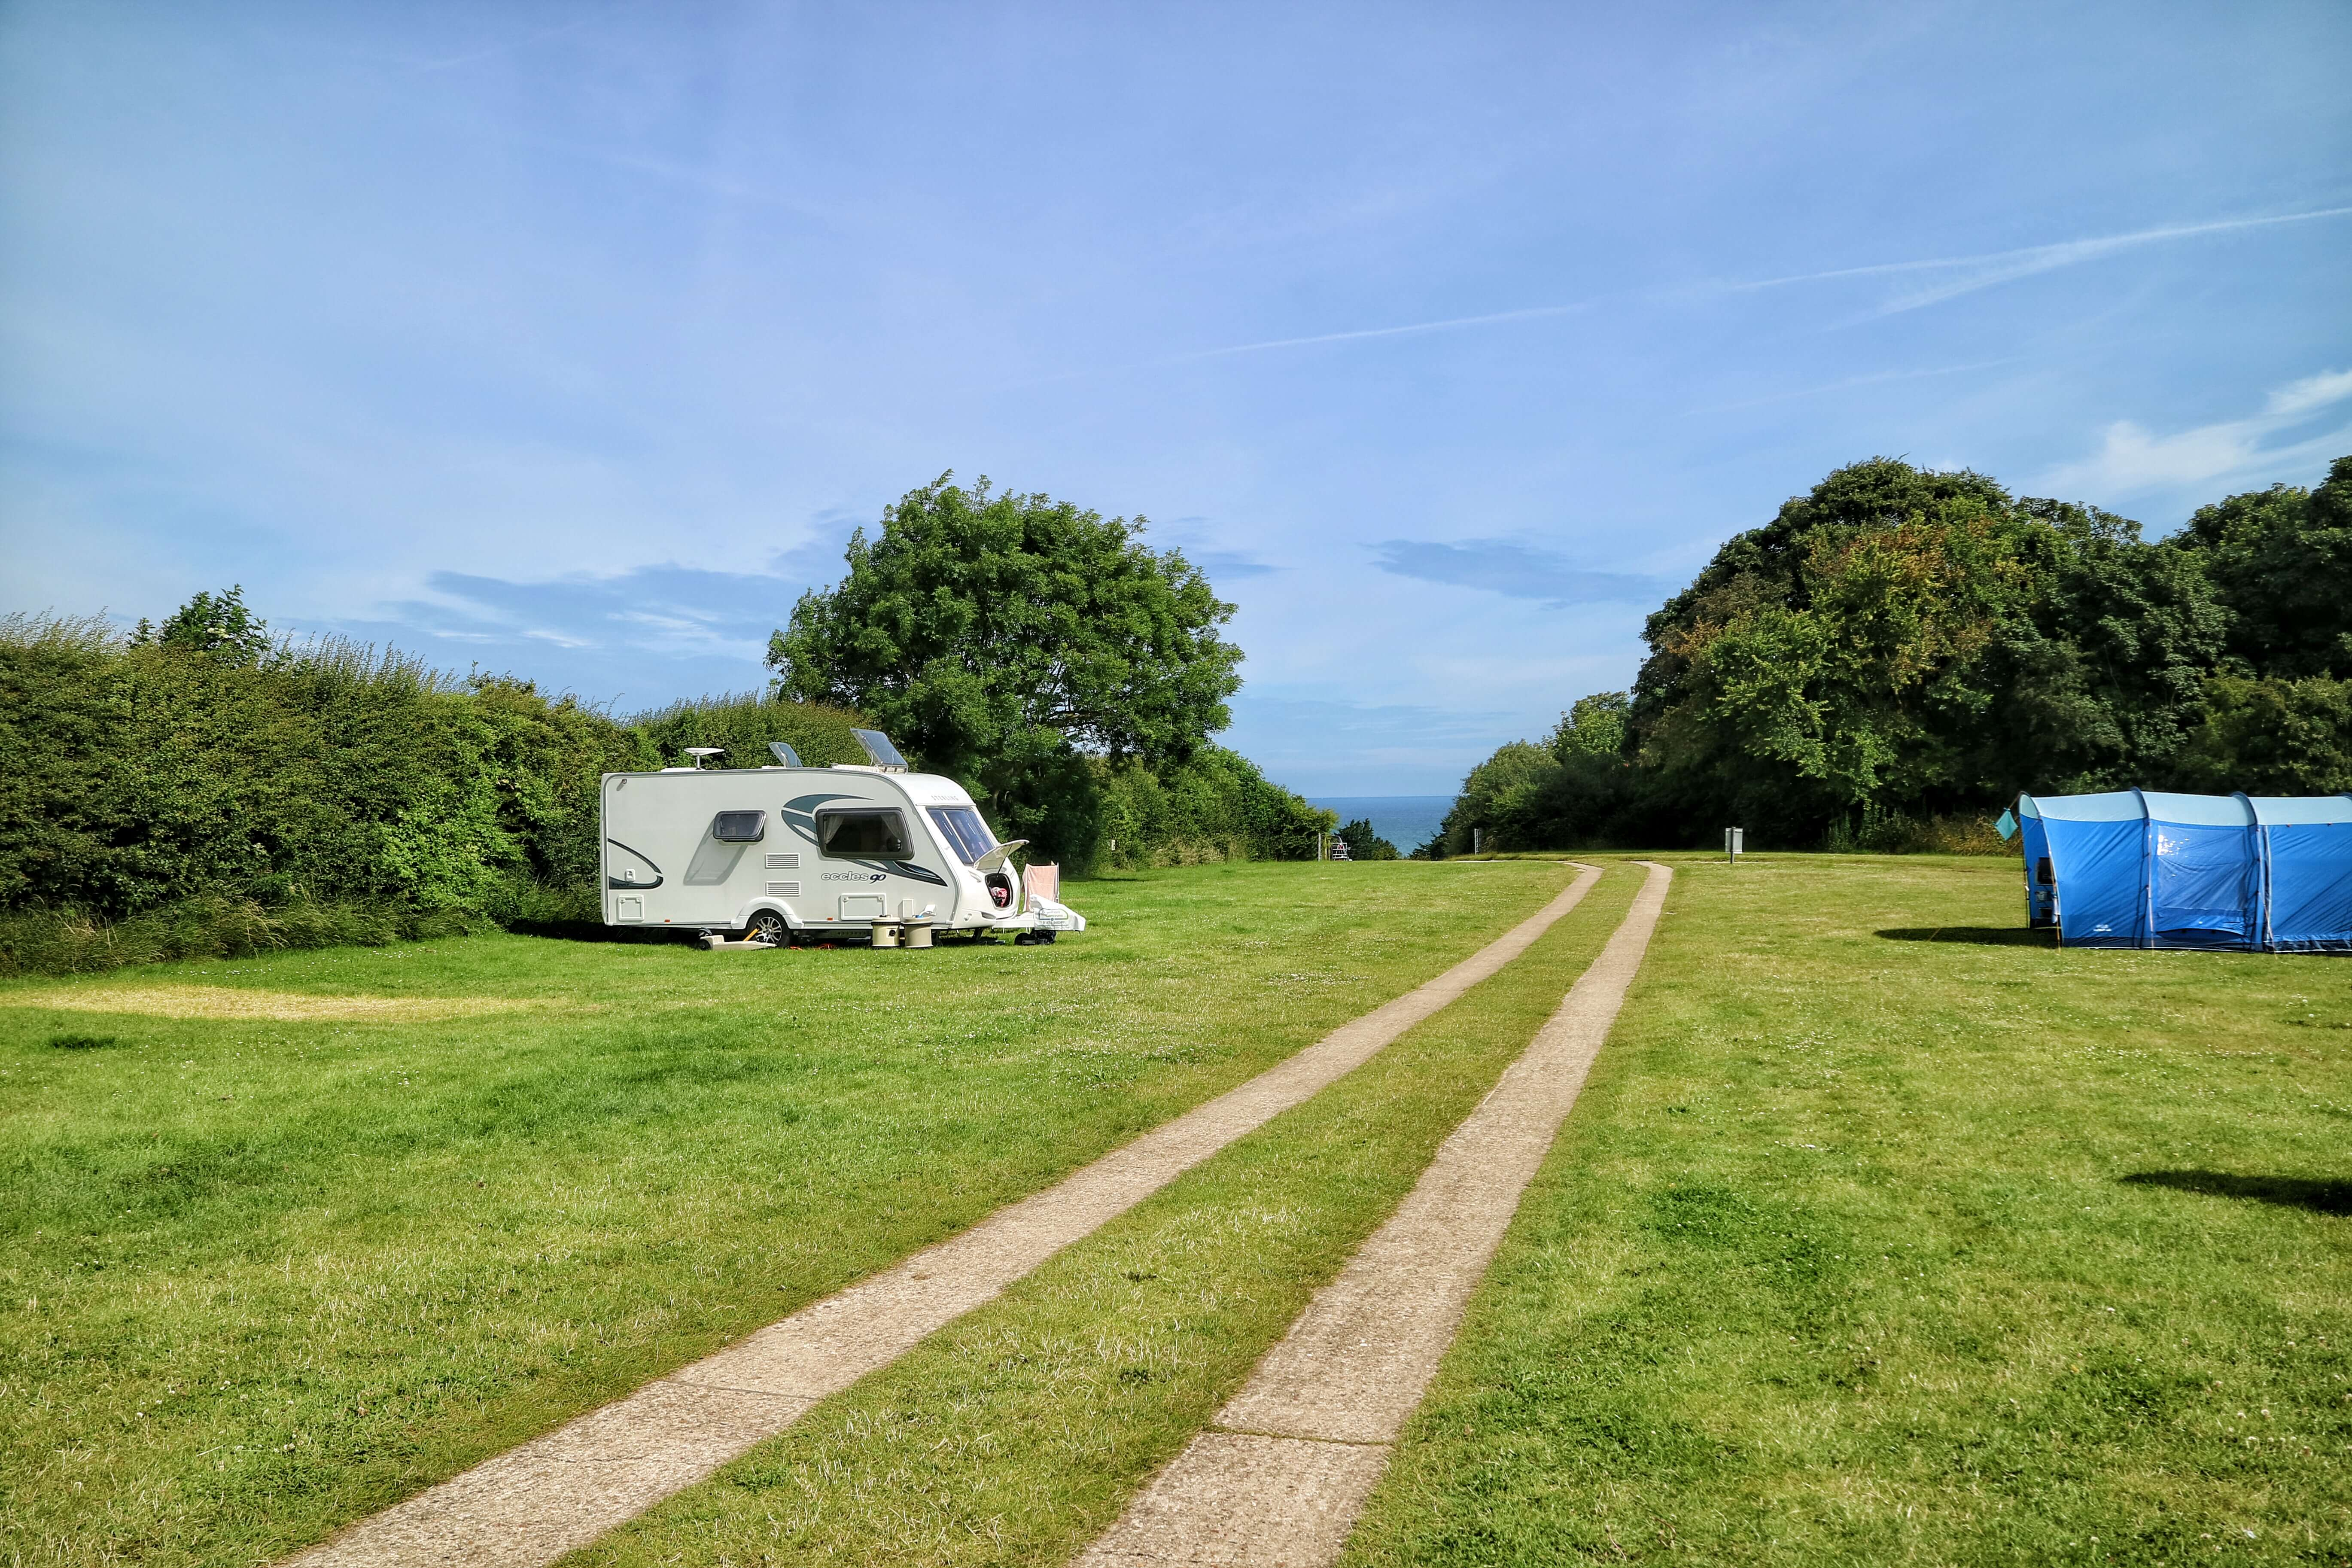 A track through a campsite. There is a caravan and tent either side. In the distance you can see the sea.